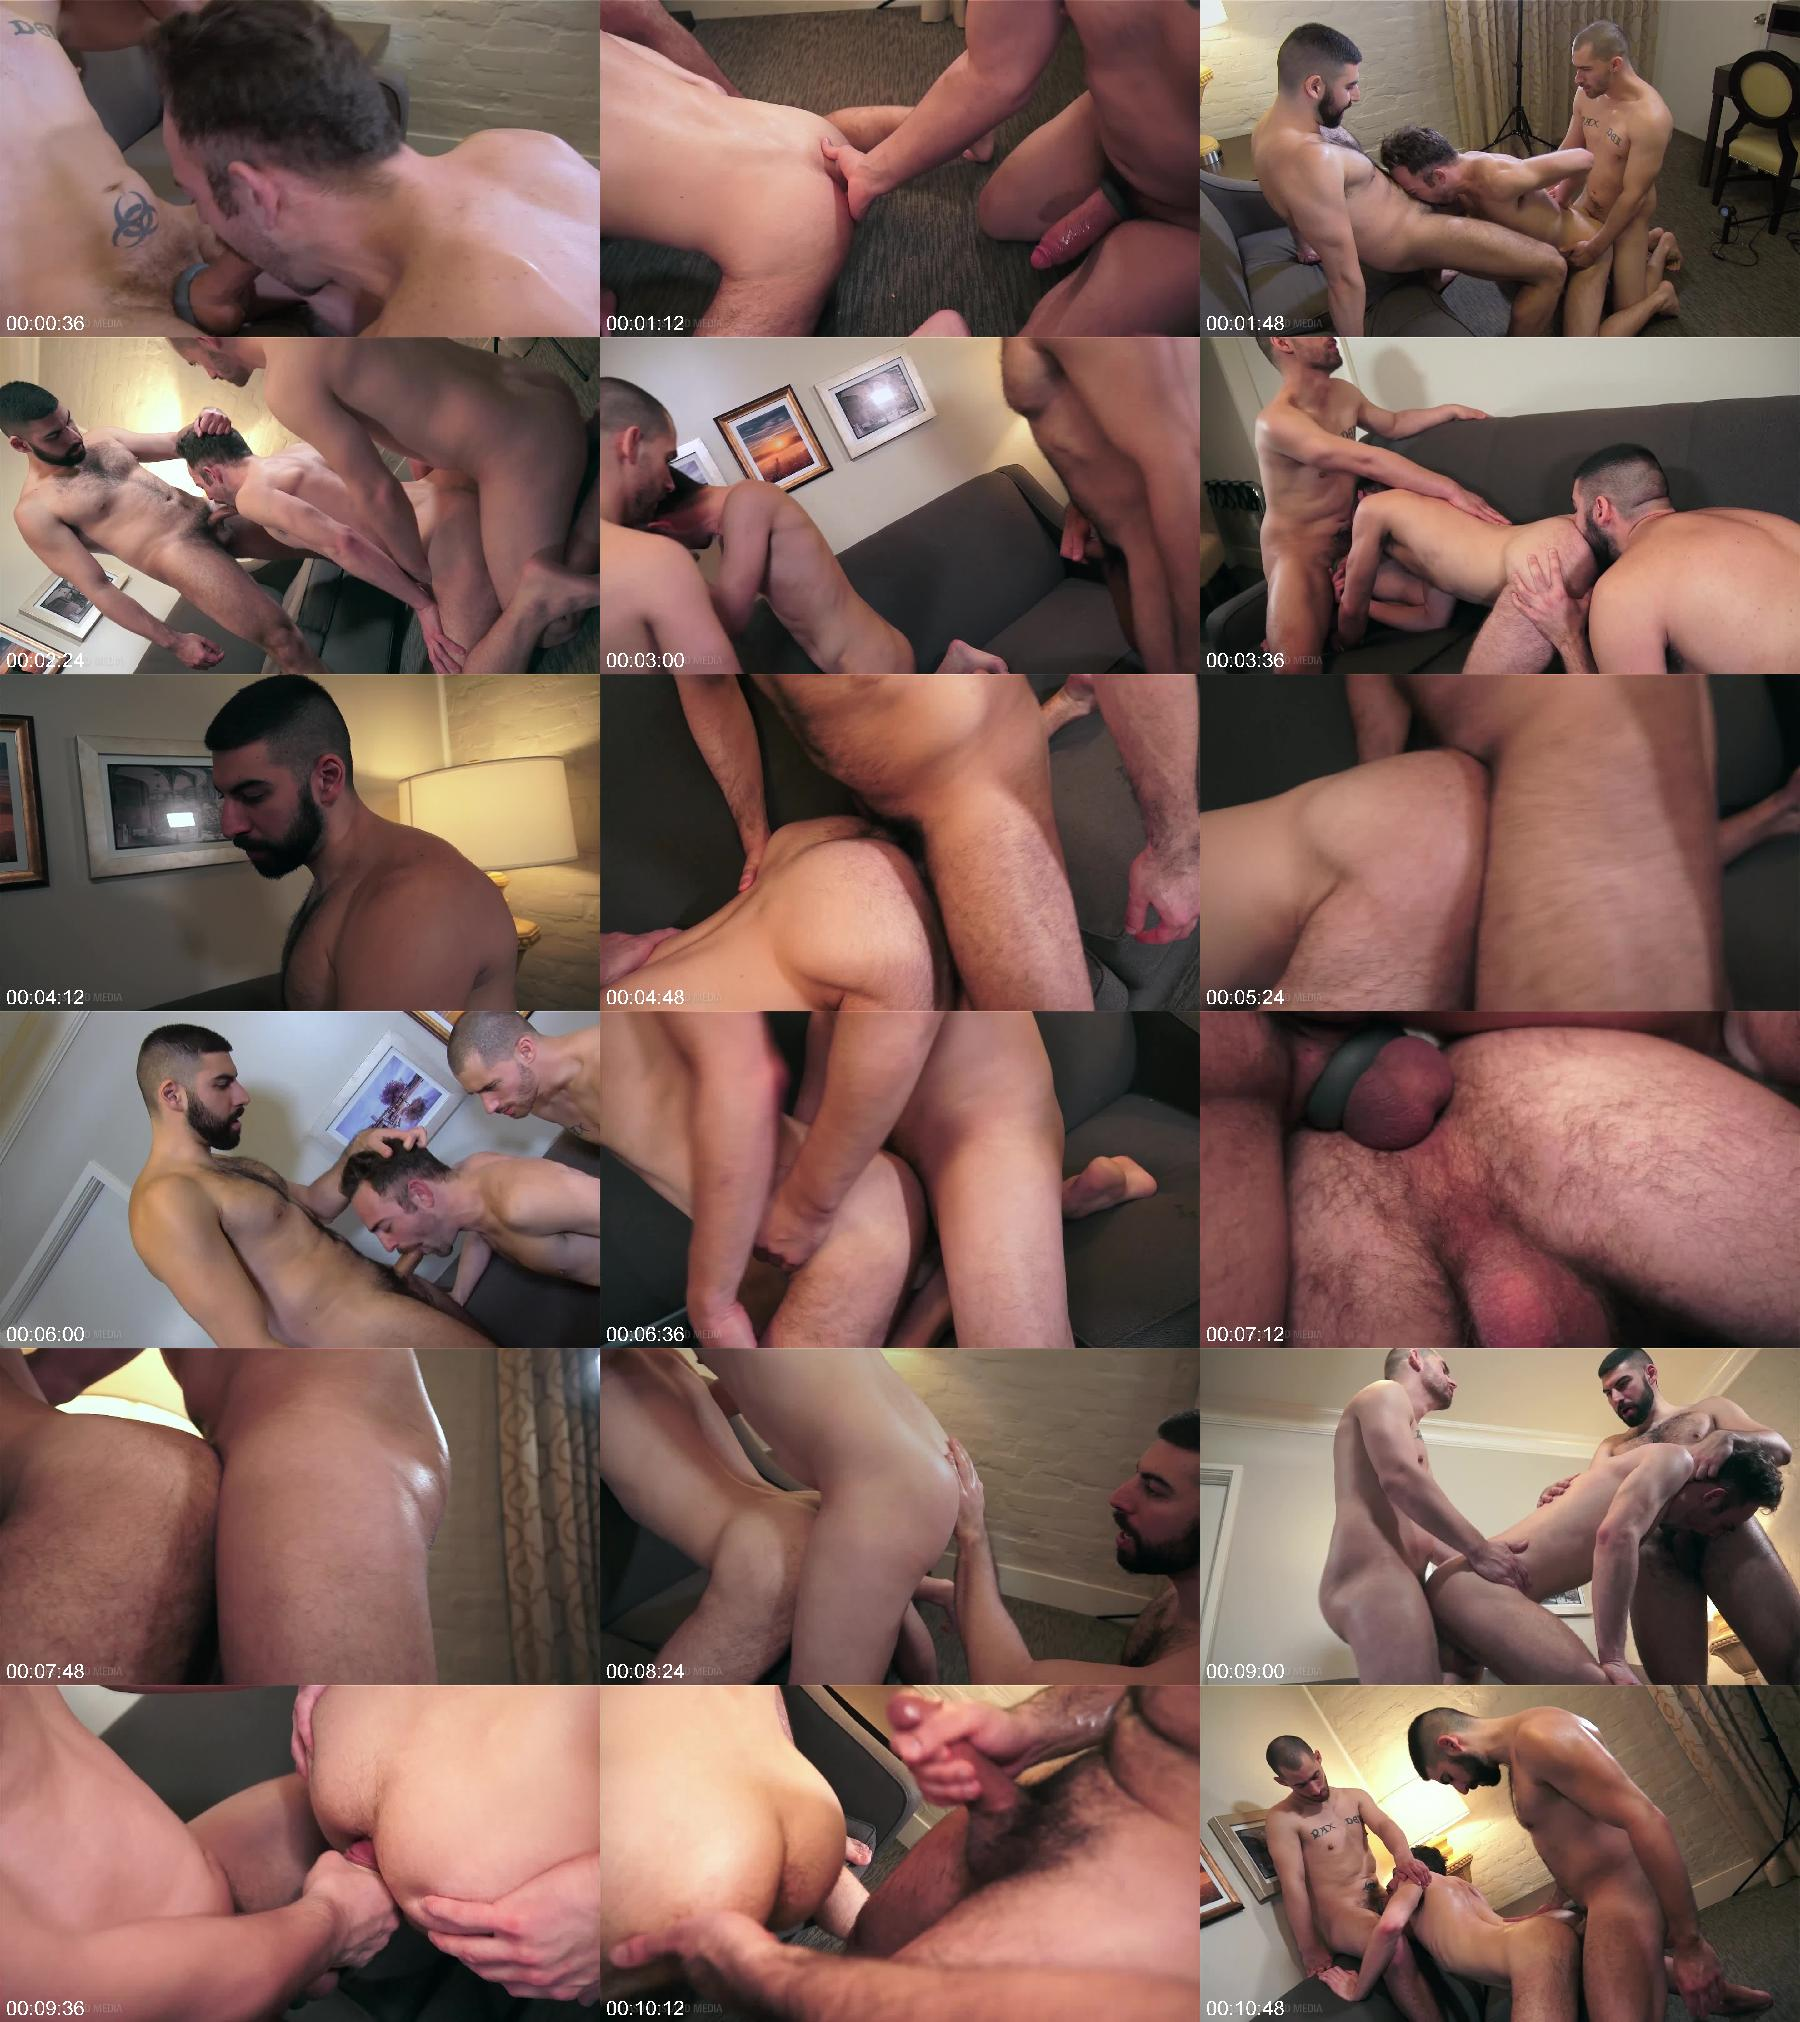 Travis wolfe stolen sex tape